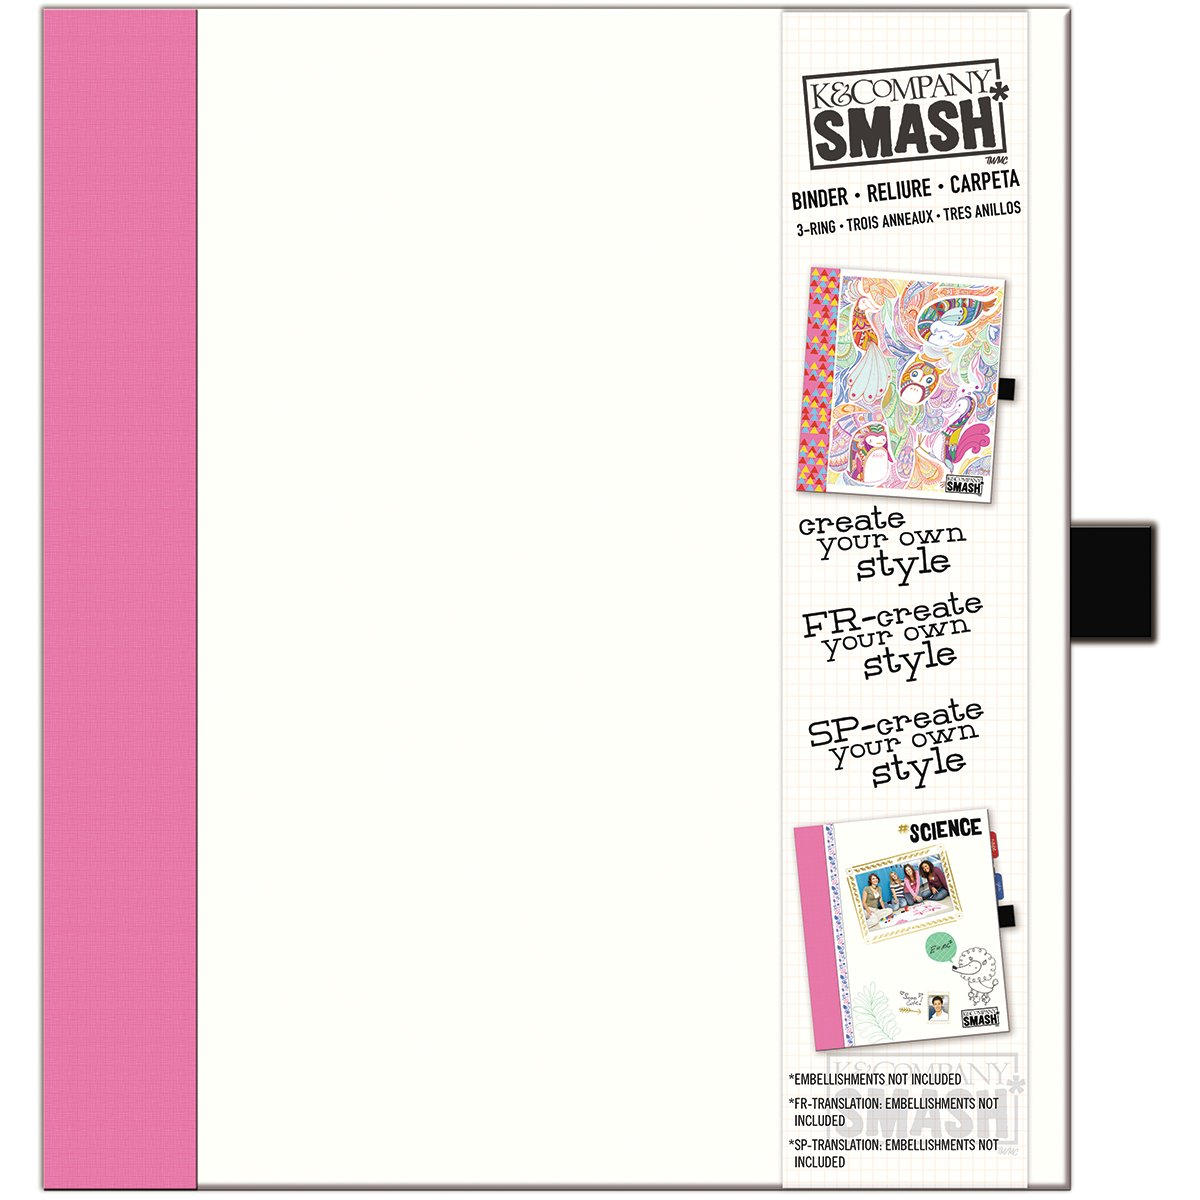 K&Company 30-685987 SMASH Paper Binder, White with Pink